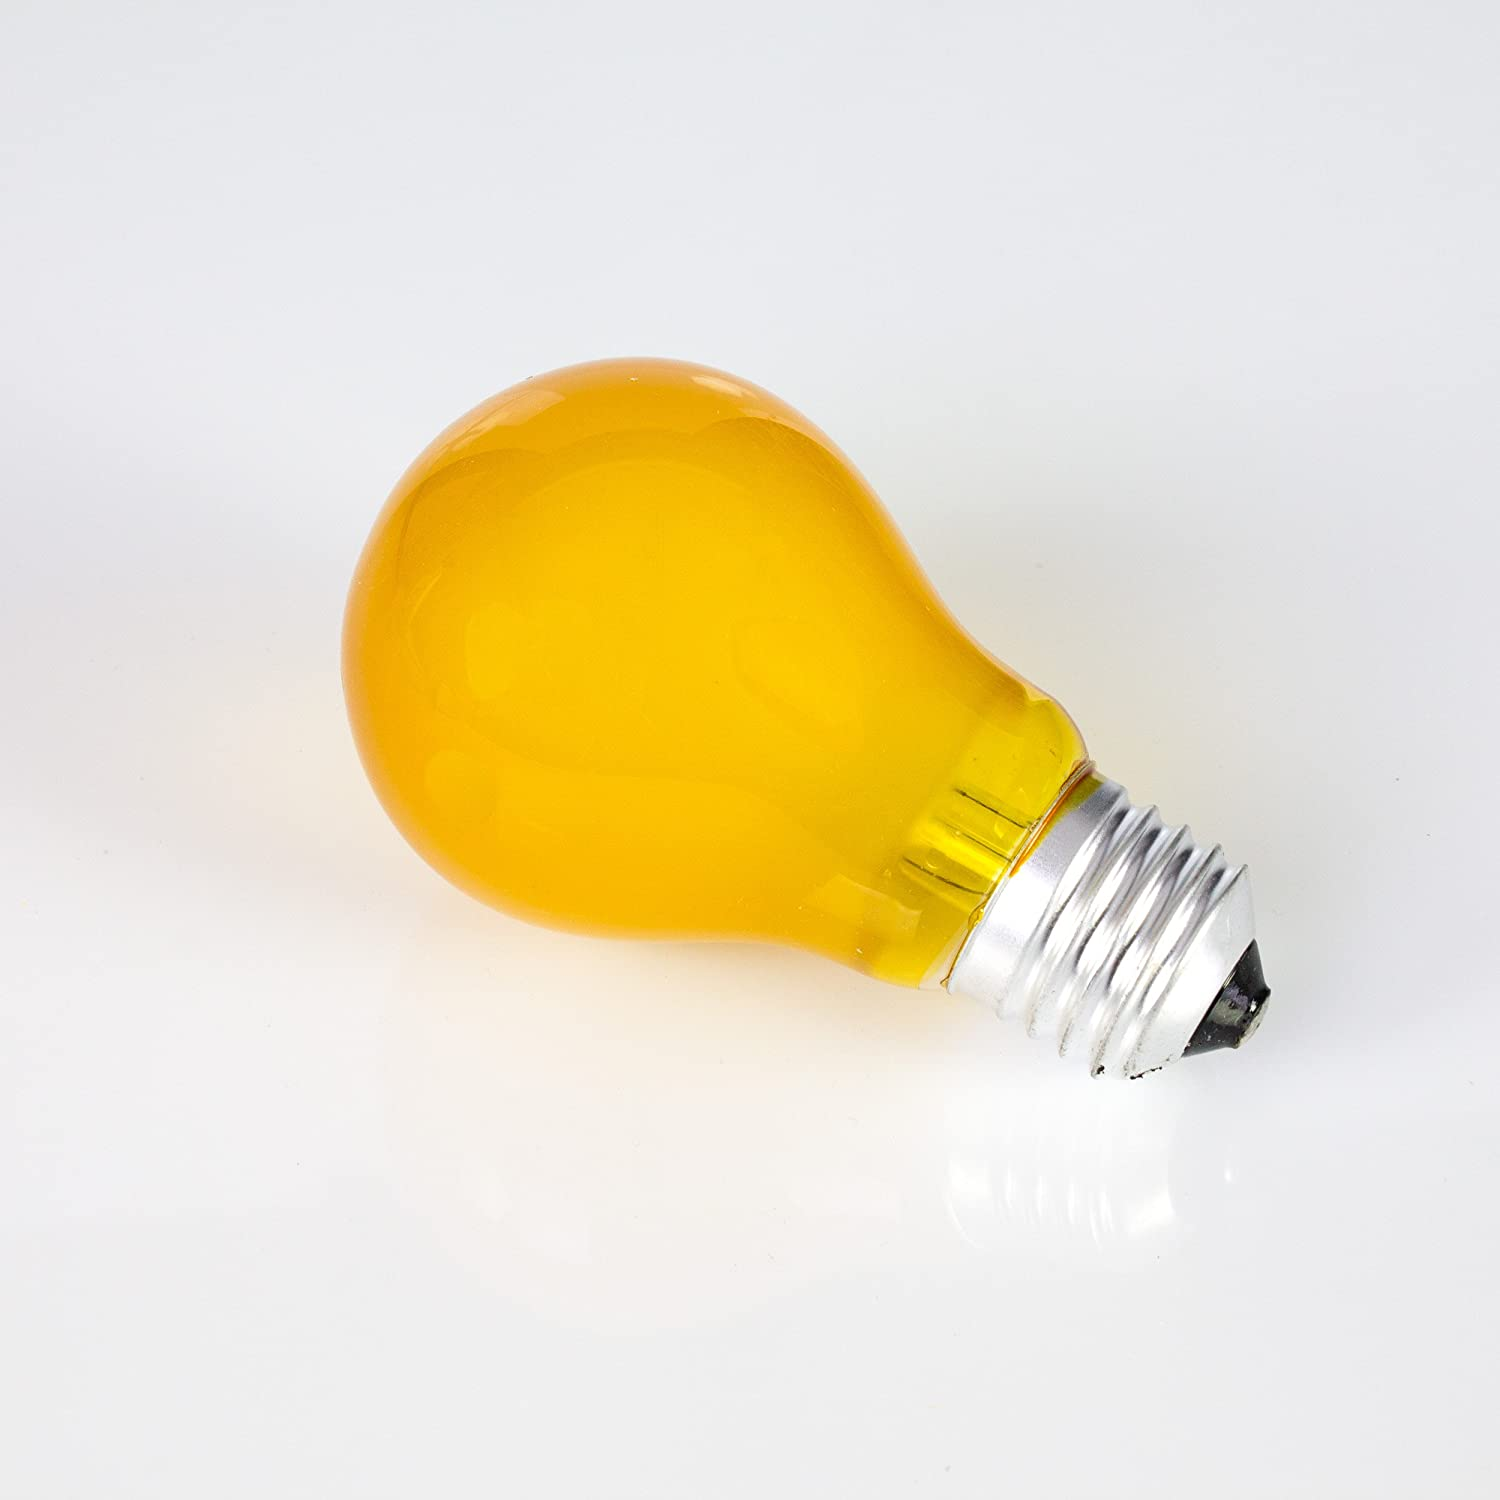 Set of 5 x Coloured Light Bulbs A19 230V / 25W for party lighting / screw cap ES / E-27 / yellow - coloured replacement lamp for ceiling lights - showking 11247-VPE